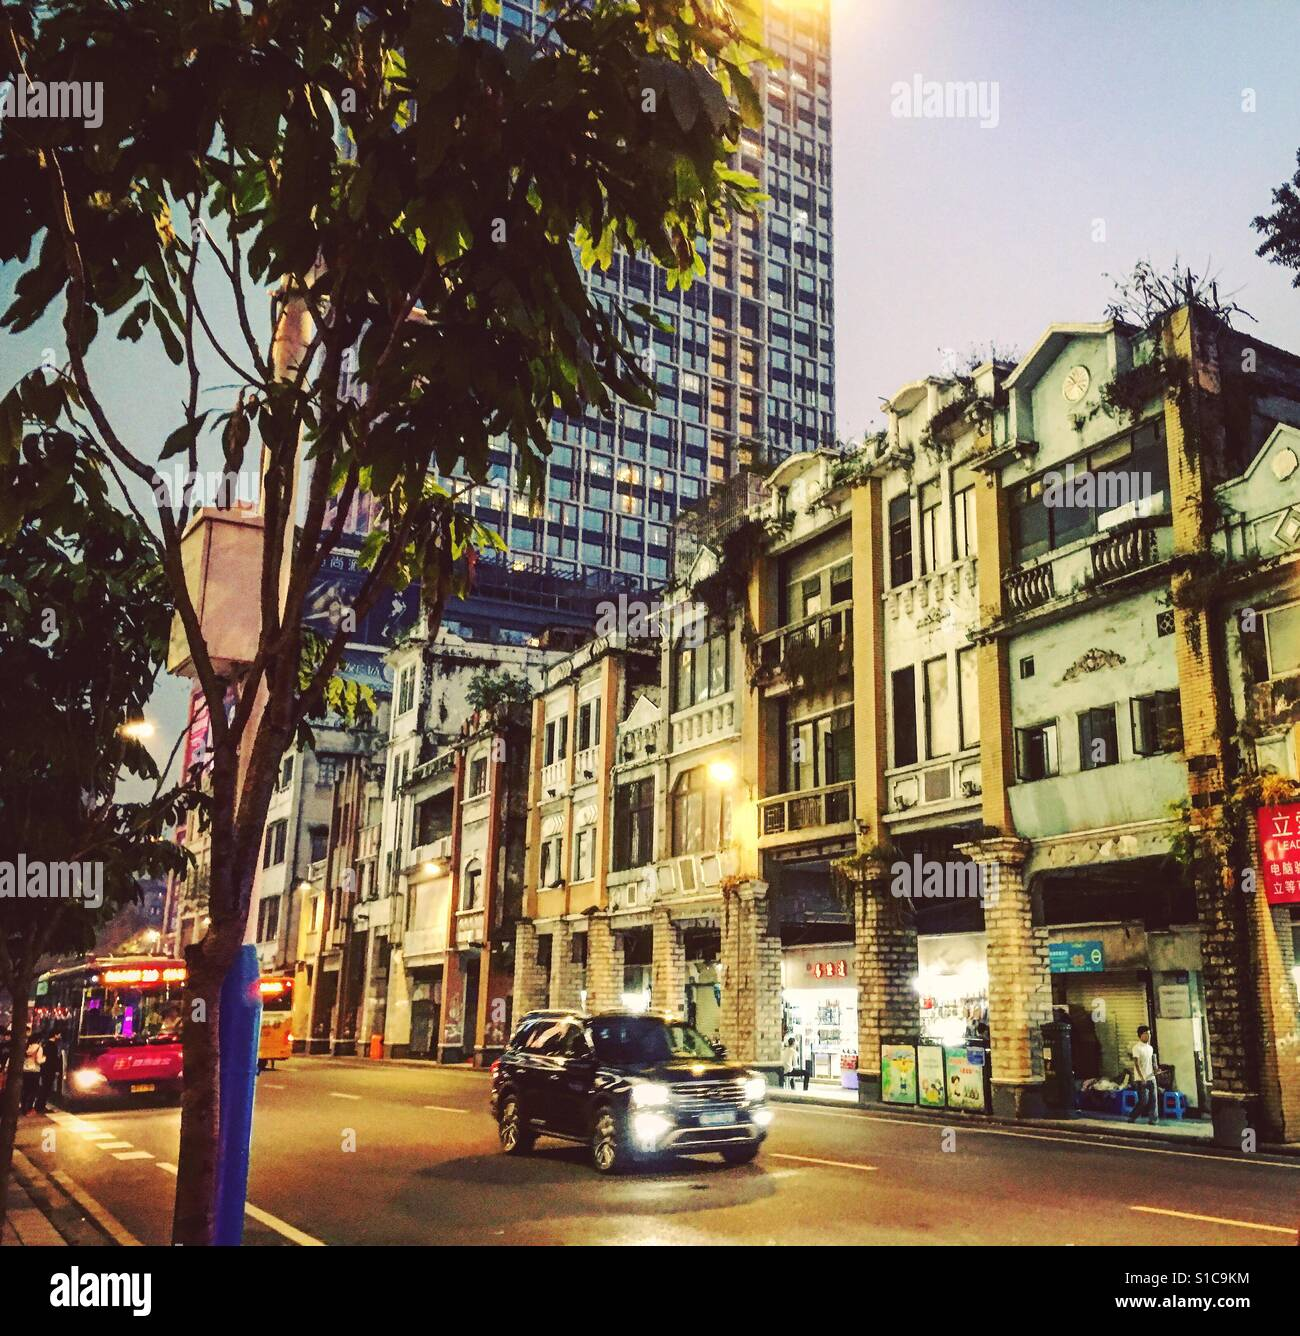 Old buildings in Guangzhou - Stock Image